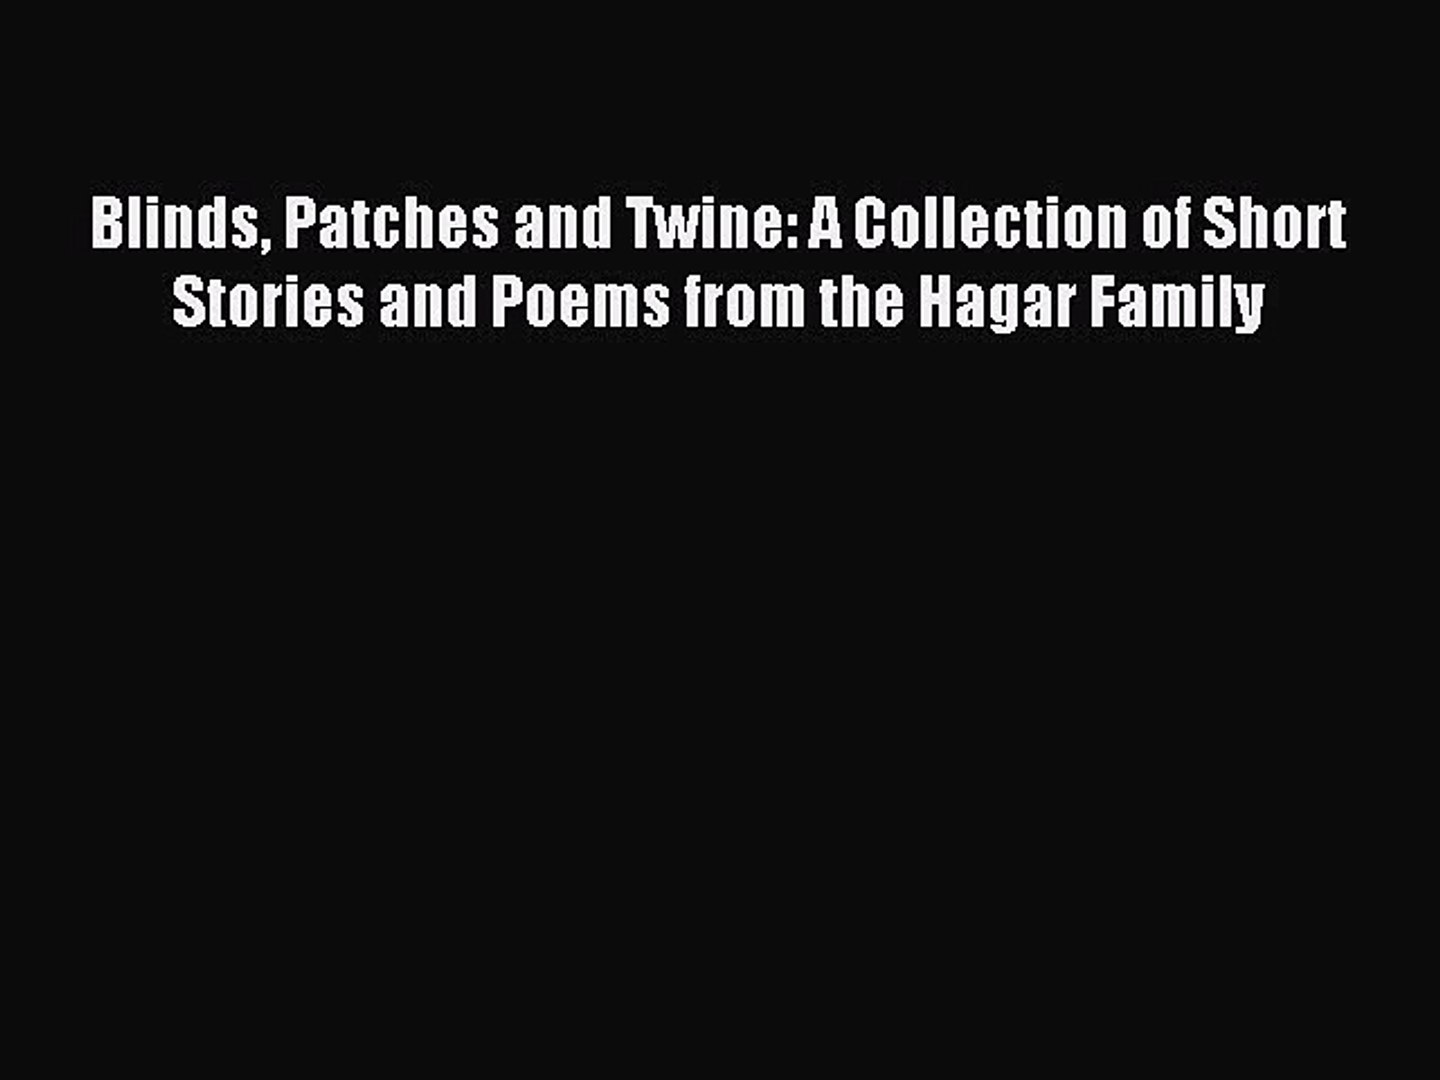 Read Blinds Patches and Twine: A Collection of Short Stories and Poems from the Hagar Family